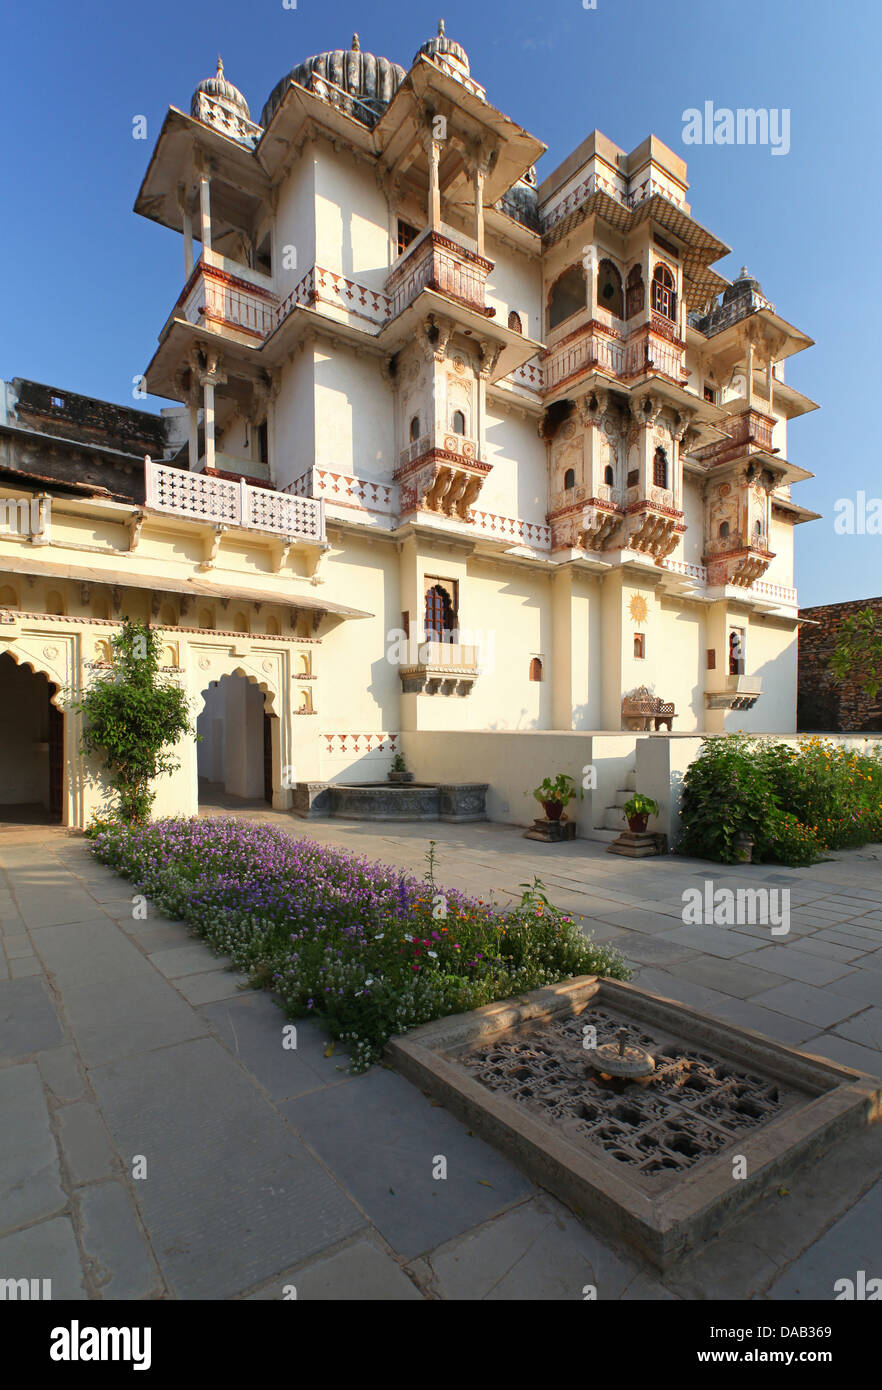 Hotel Castle Bijaipur, palace, flowers, mauve, noble, luxurious, rural, palm, India, Asia, Rajasthan, - Stock Image